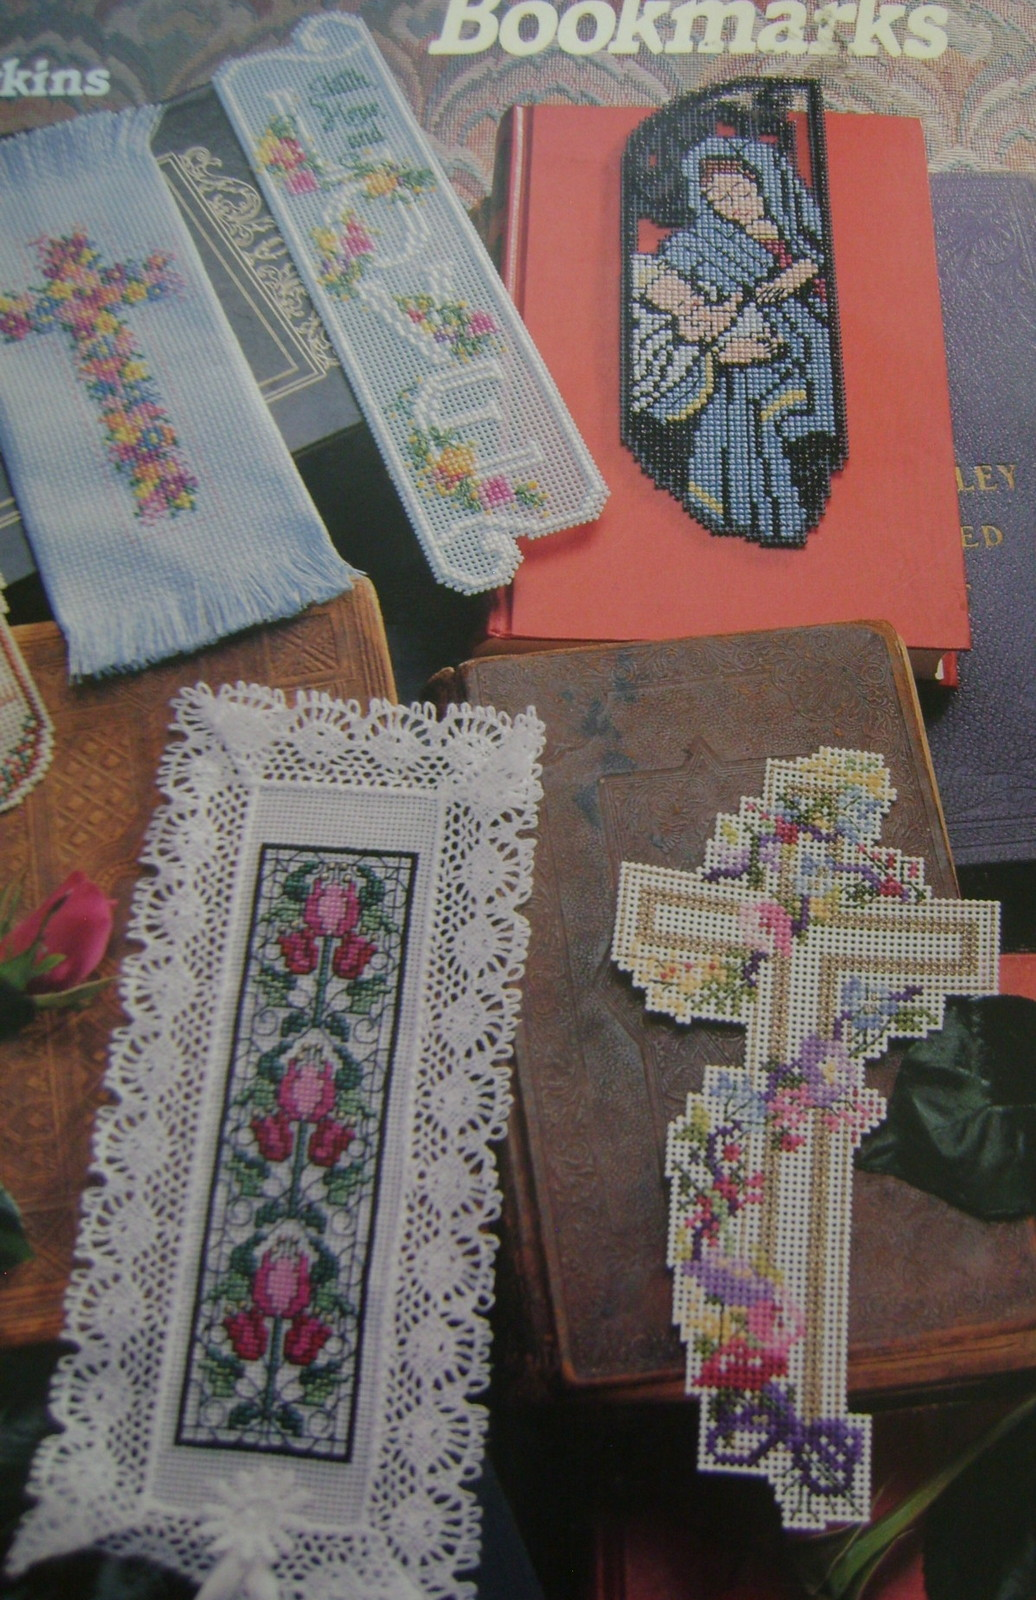 Pattern Kit Bookmarks - 2 Books Bookmarks & Samplers, 6 Packages Aida Cloth image 6